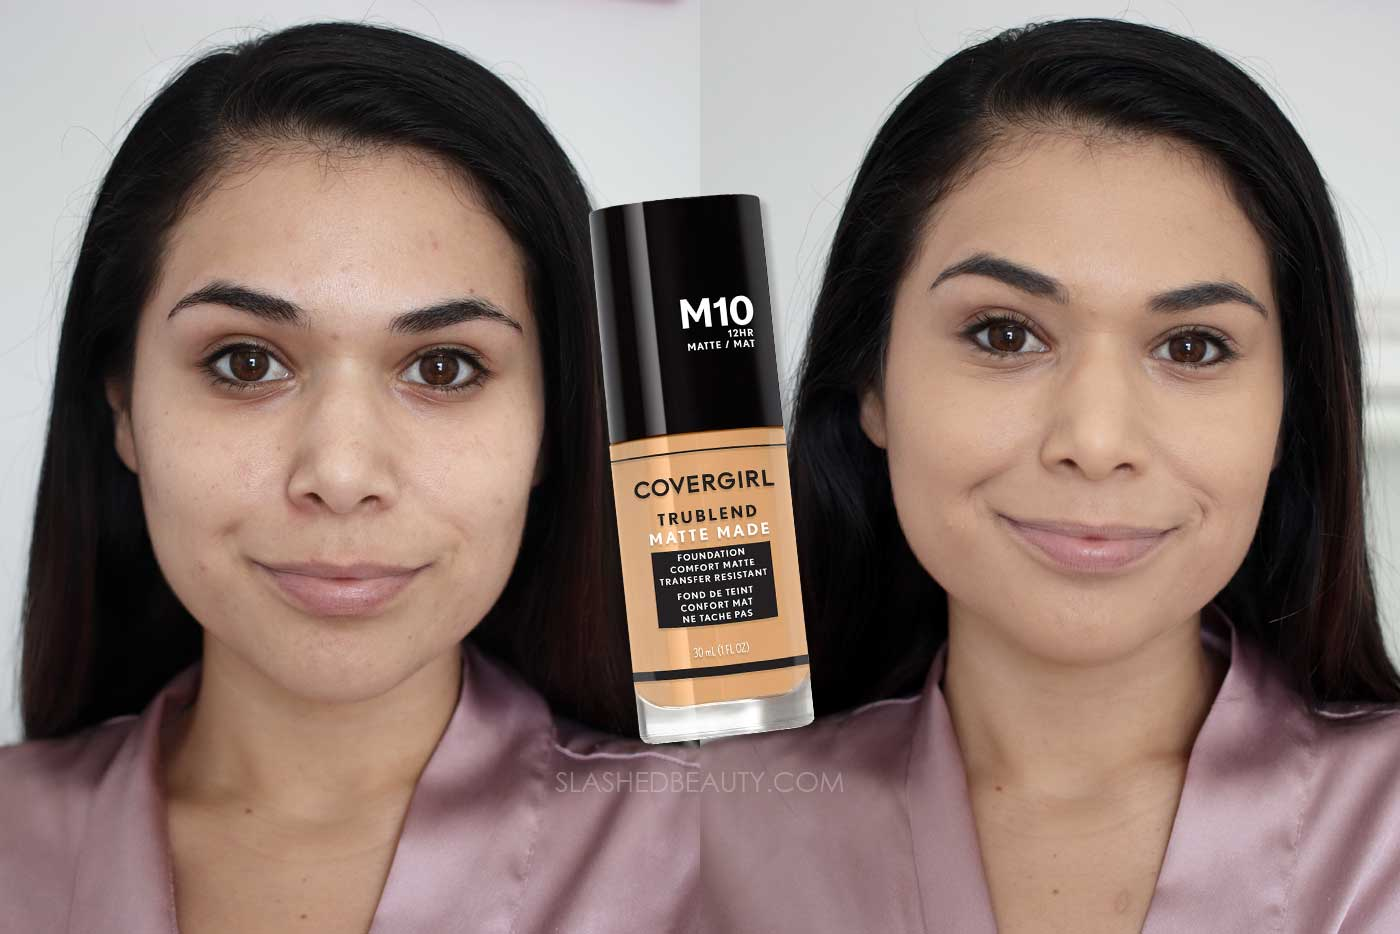 4 Best Full Coverage Drugstore Foundations Slashed Beauty